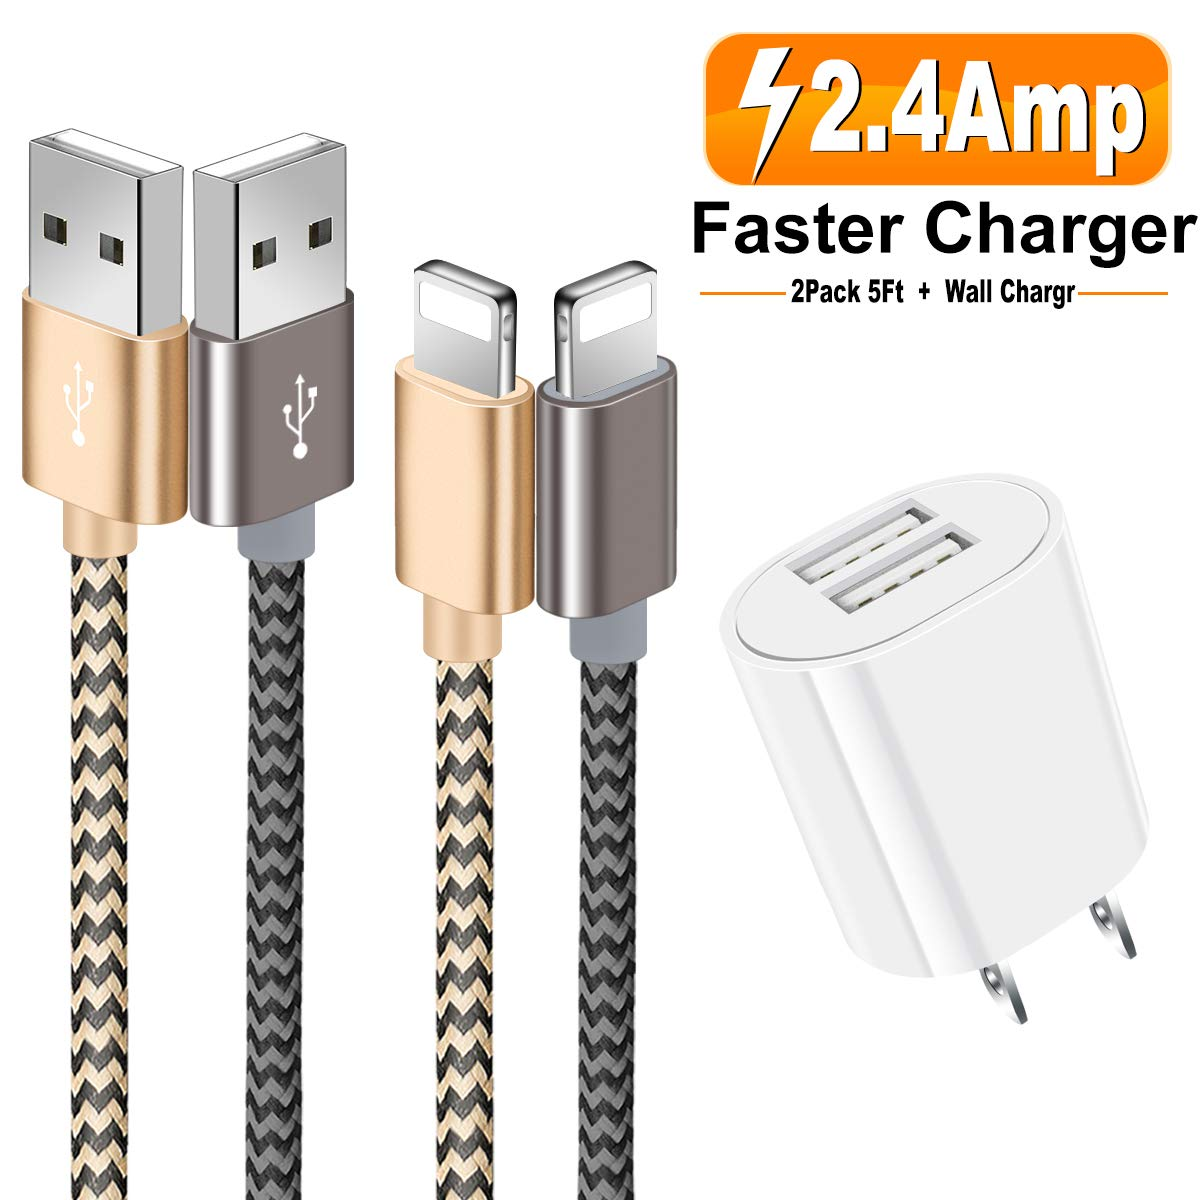 Phone Fast Charger, 2-Pack 5Ft/1.5M Nylon Braided Phone Charging Cable Data Sync Transfer Cord